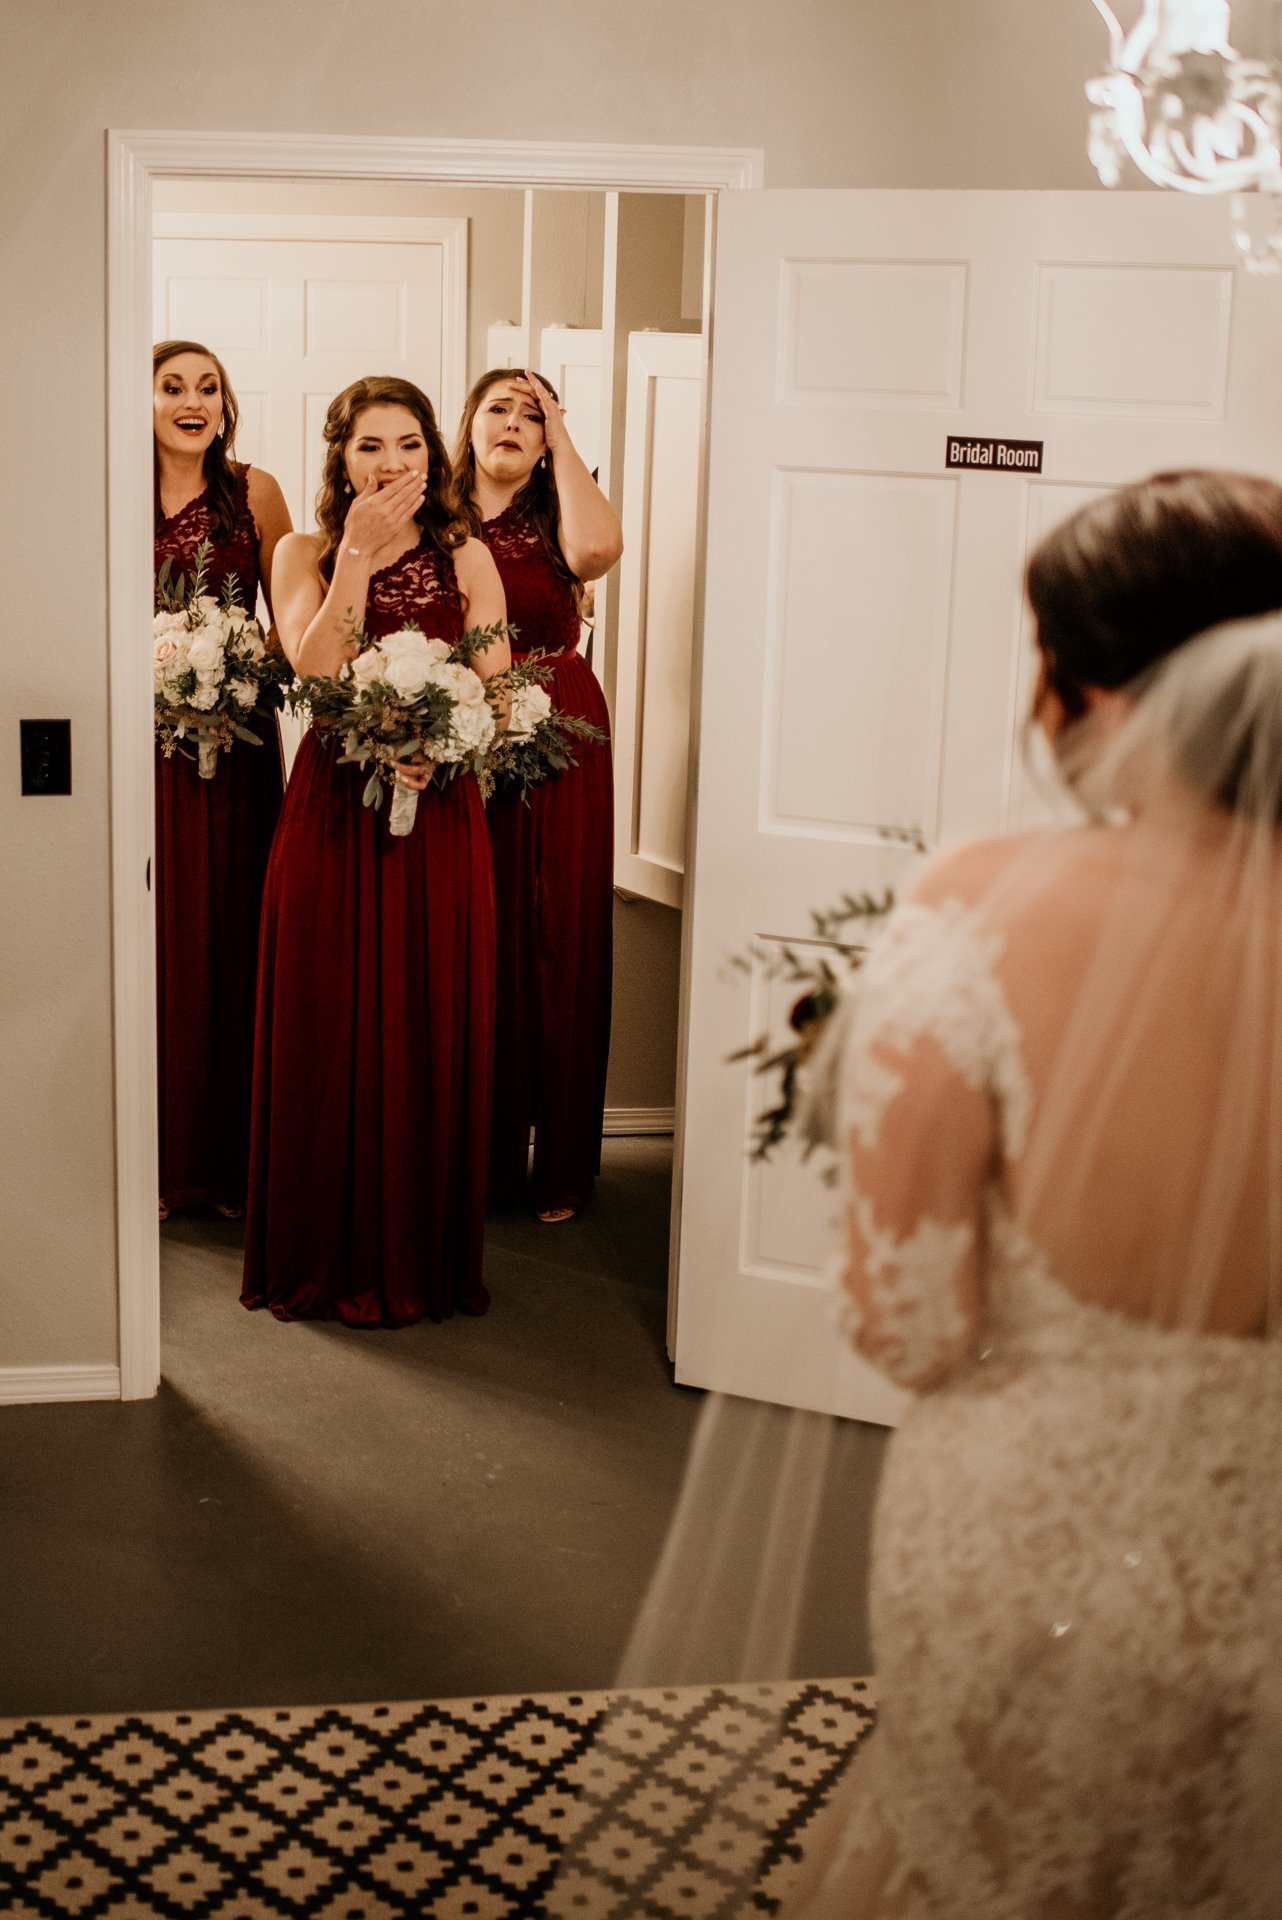 Bridesmaids see bride for the first time / K